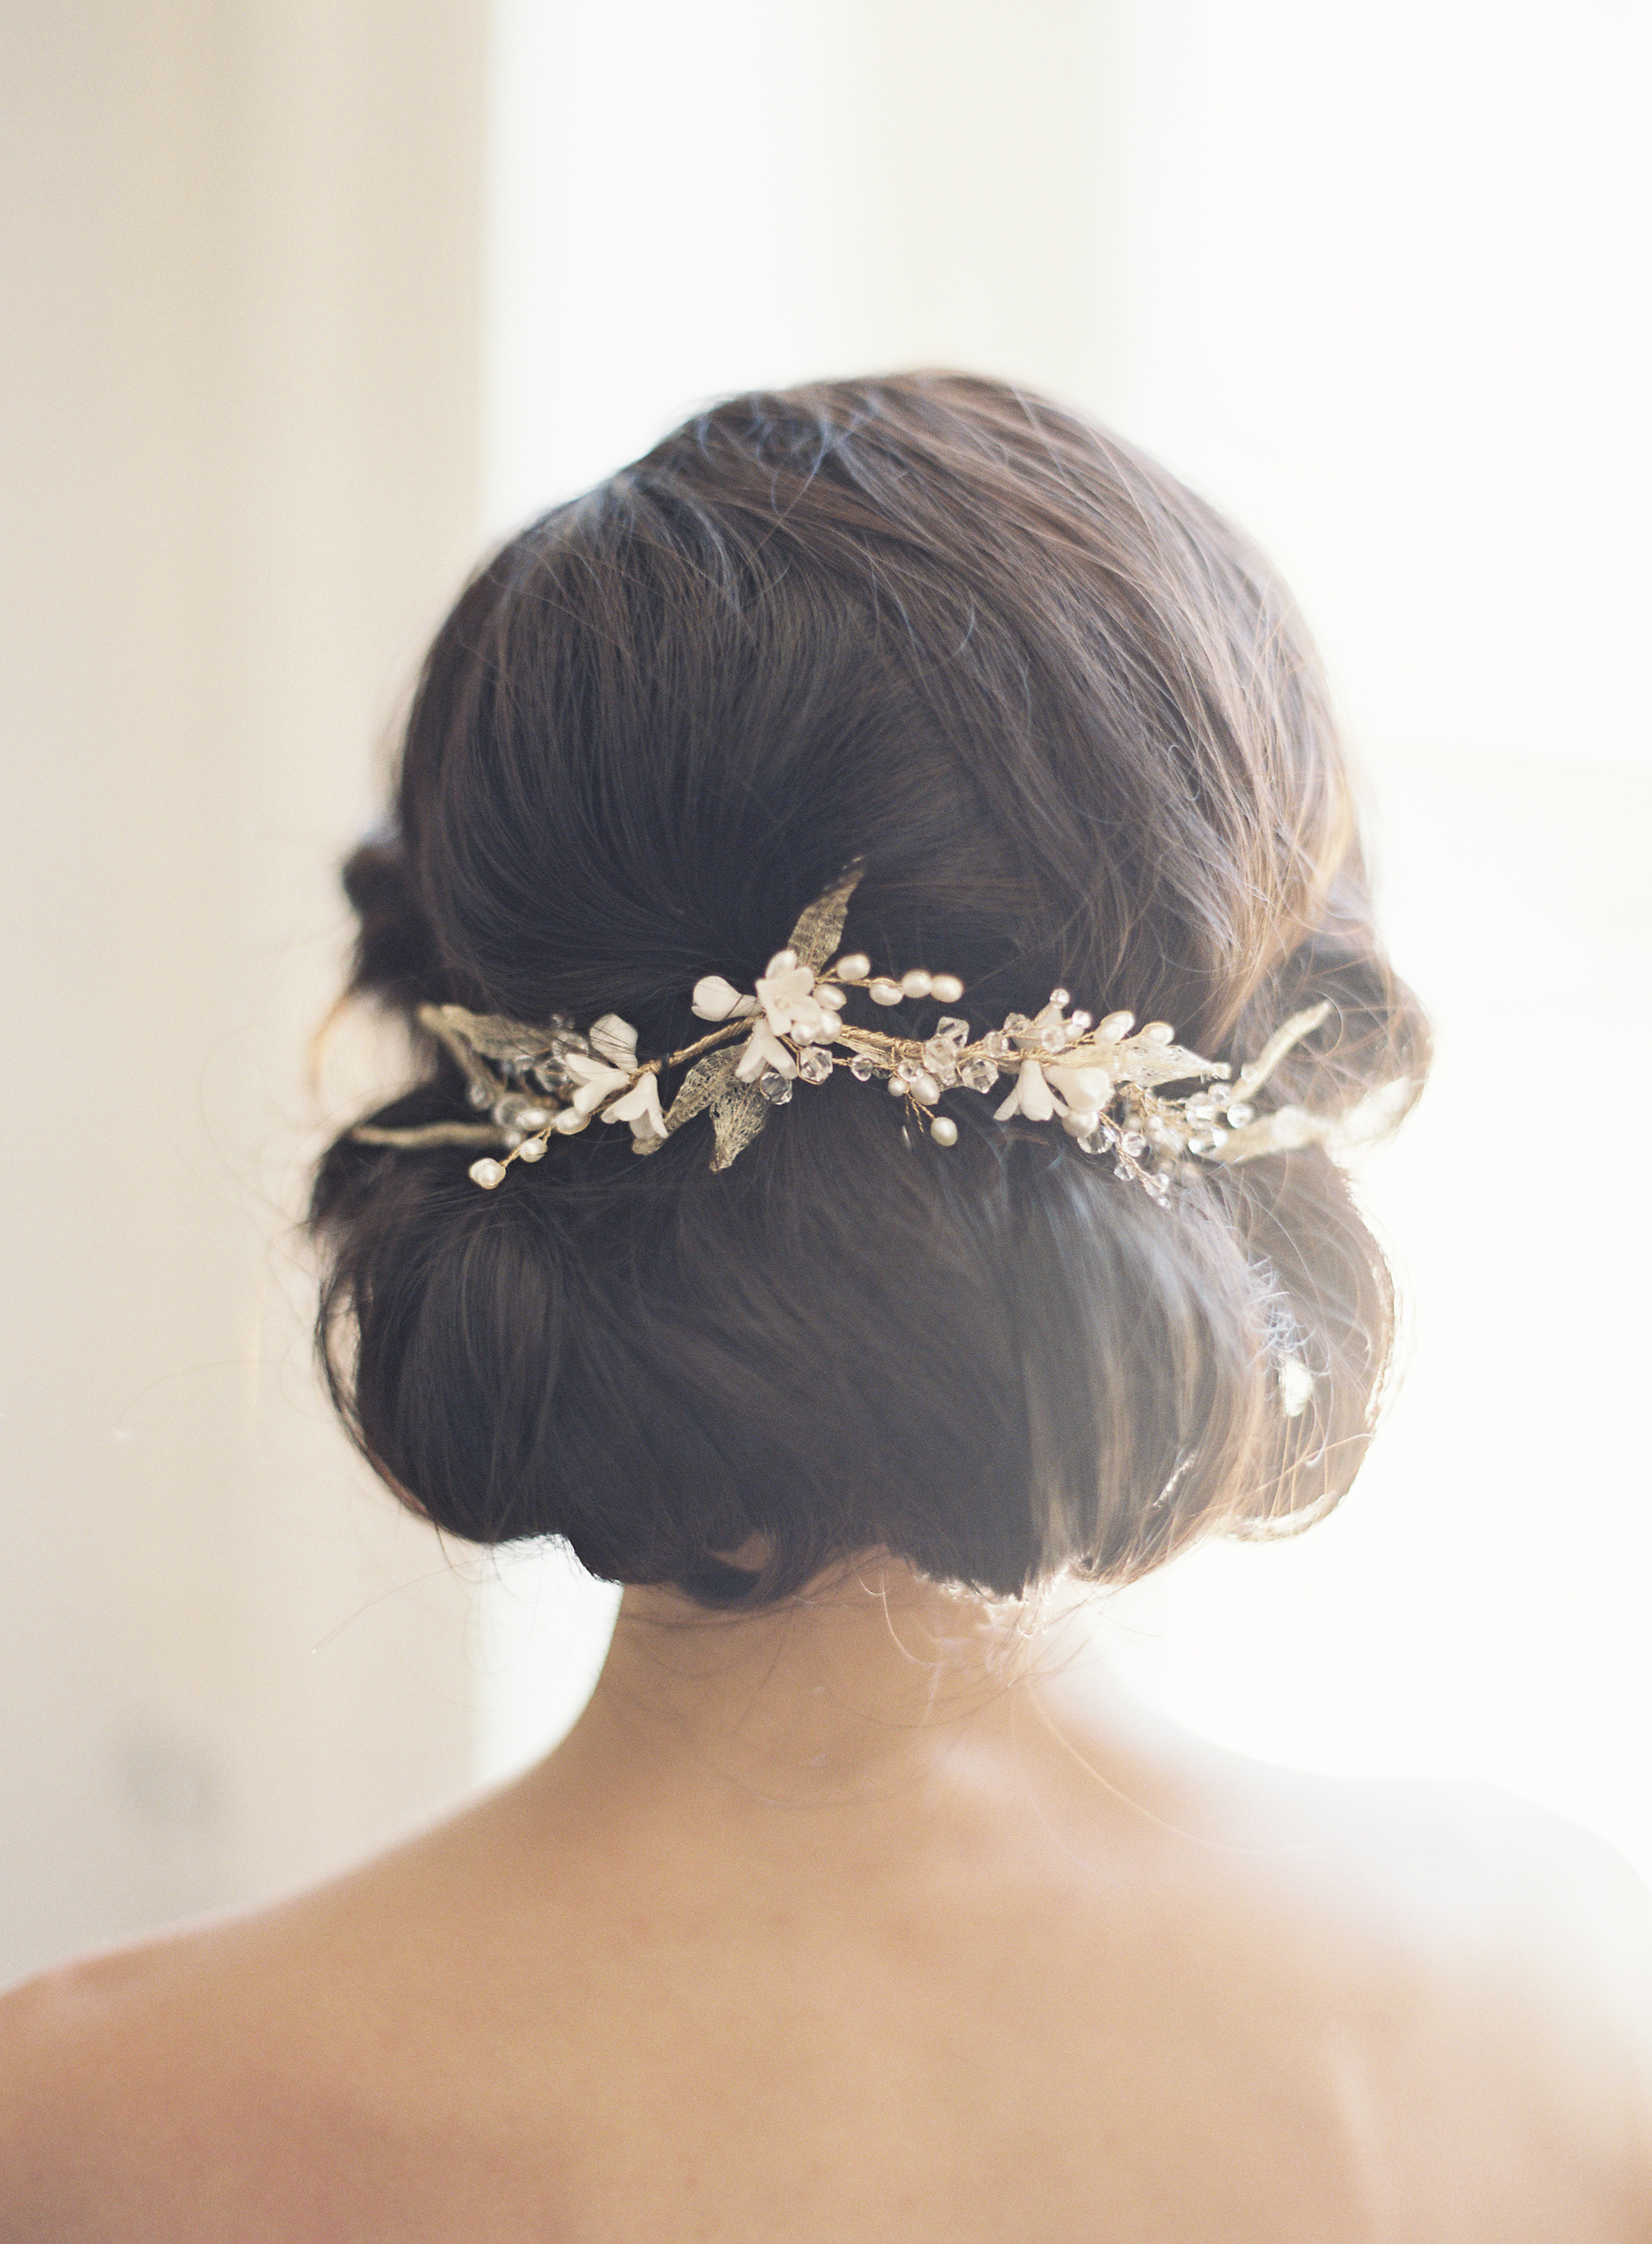 Everything You Need to Know About the Wedding Hair Trial